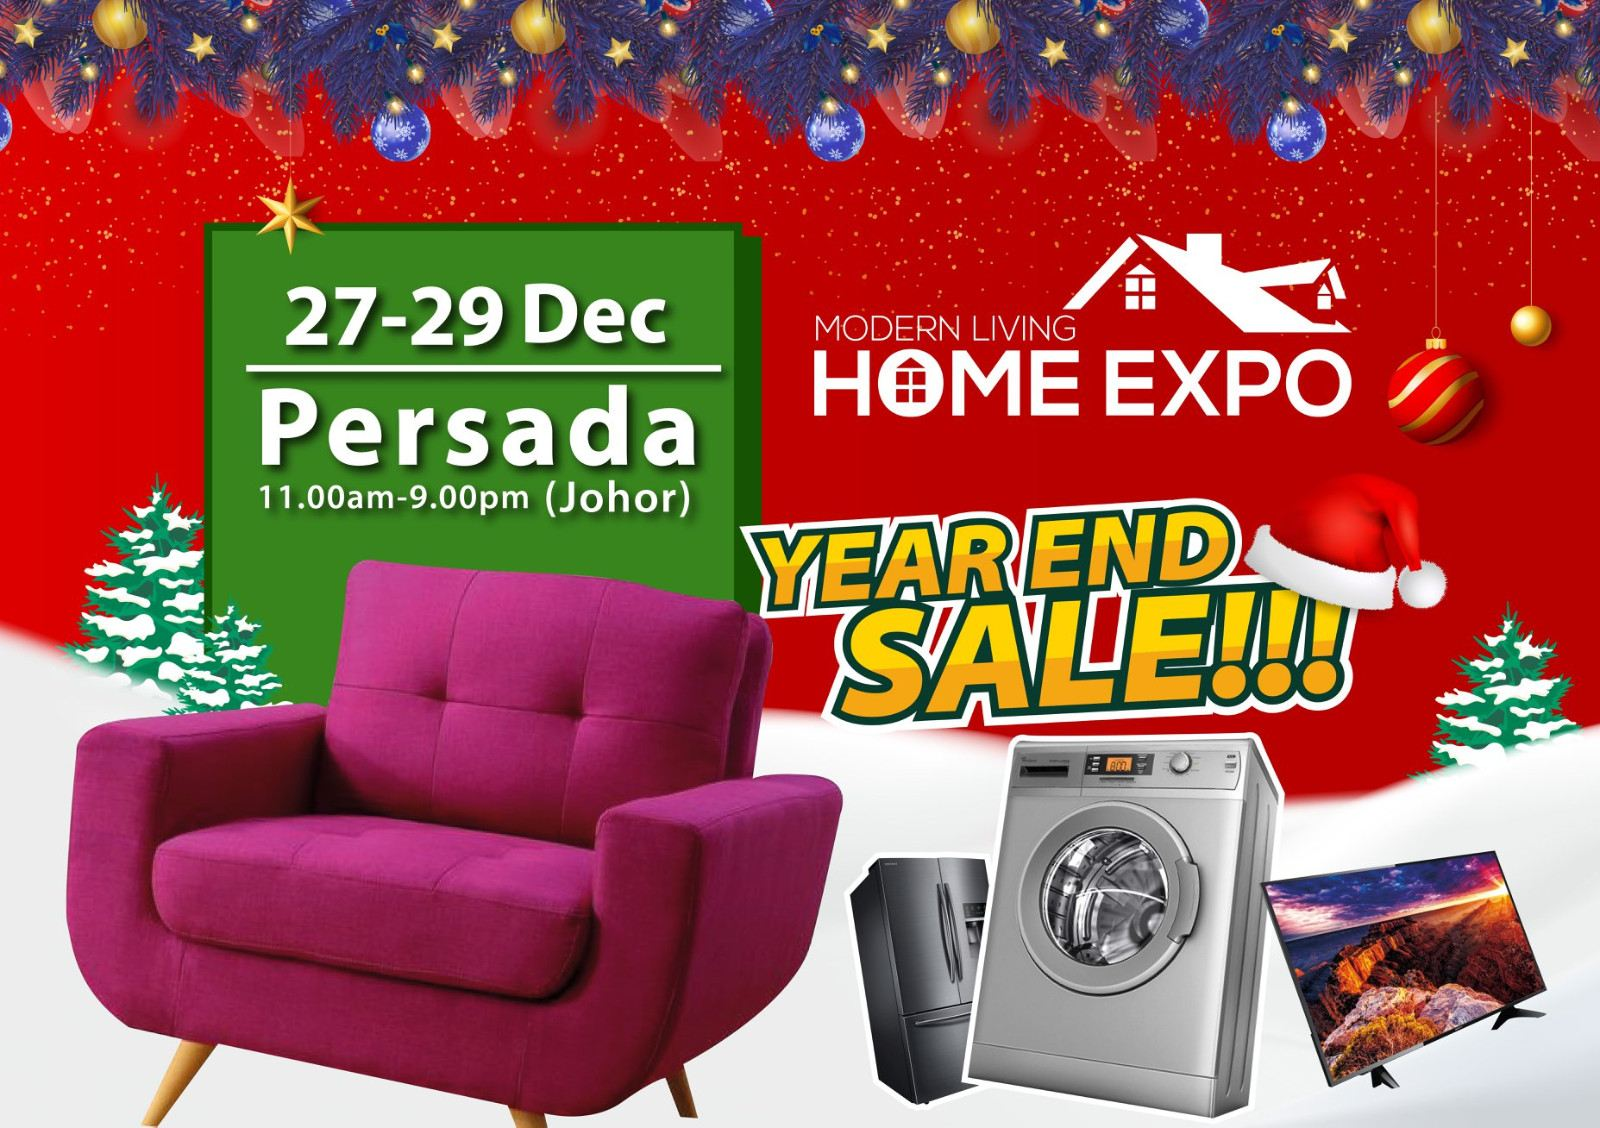 Modern Living Home Expo @Persada, 27-29 Dec 2019